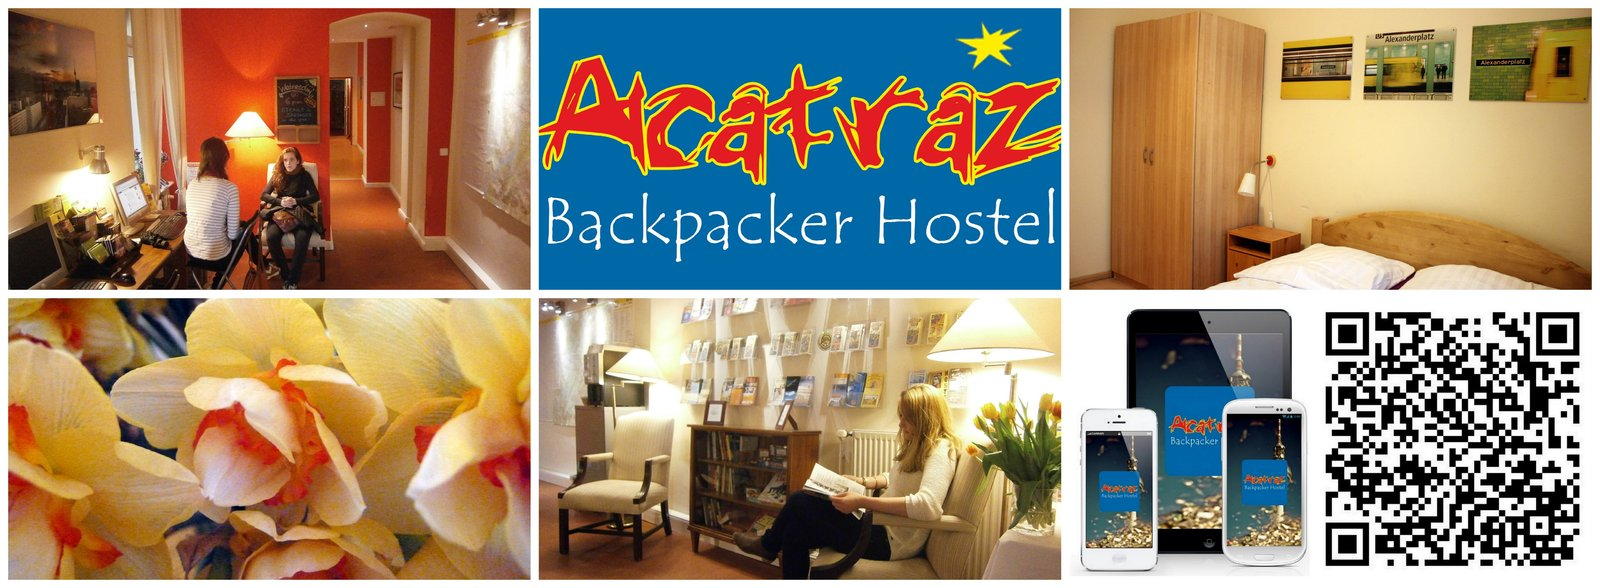 Alcatraz Backpacker Hostel